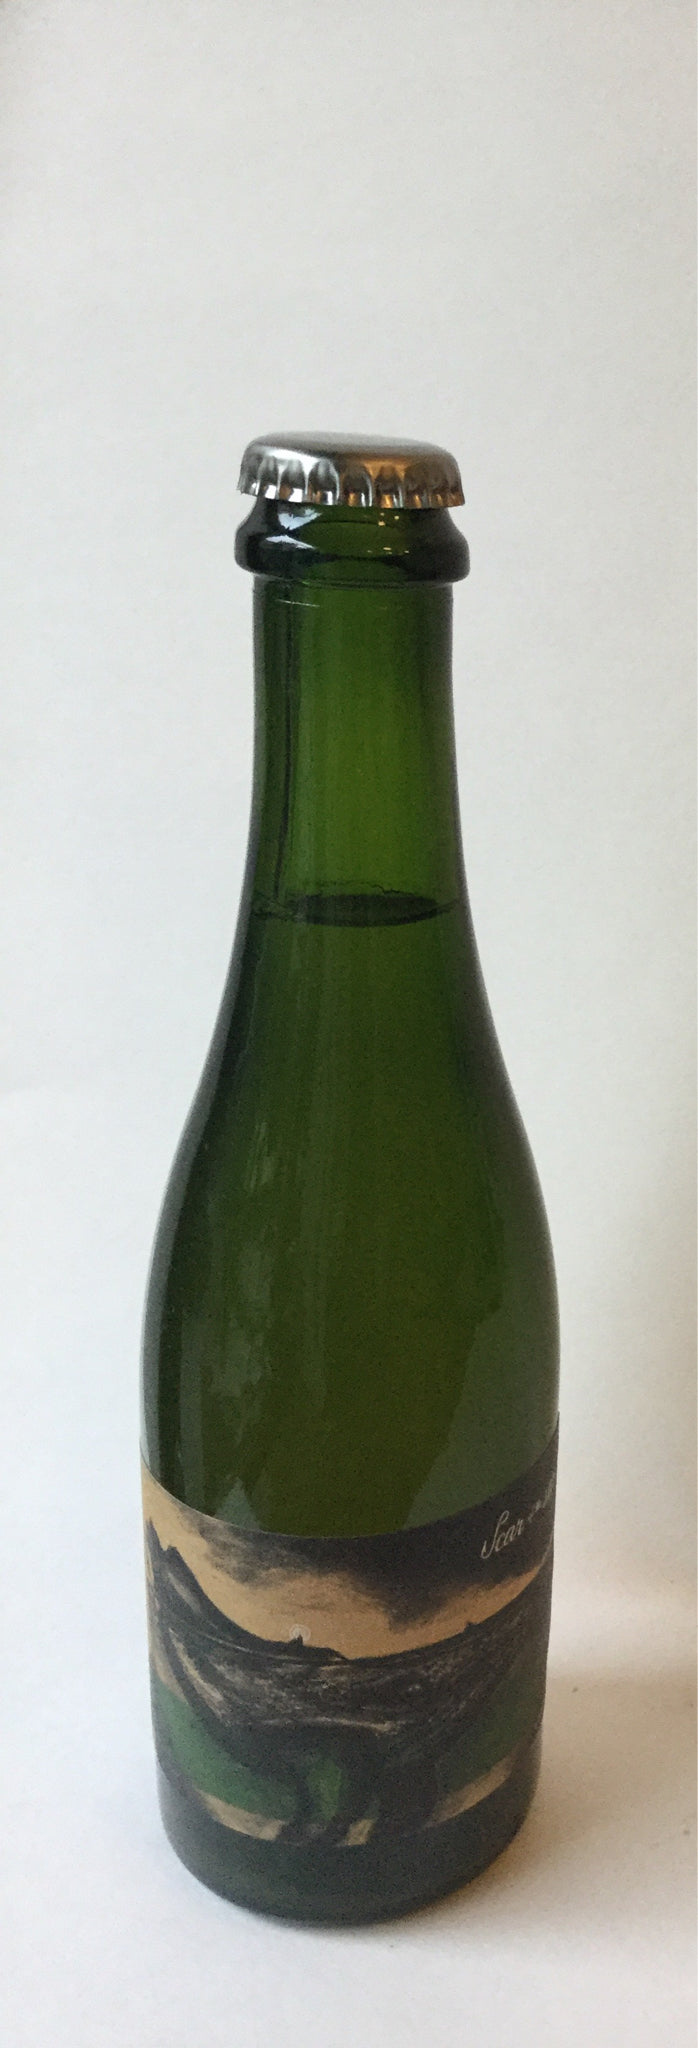 Scar of the Sea Dry Hopped Cider 2016, 375ml - Frankly Wines